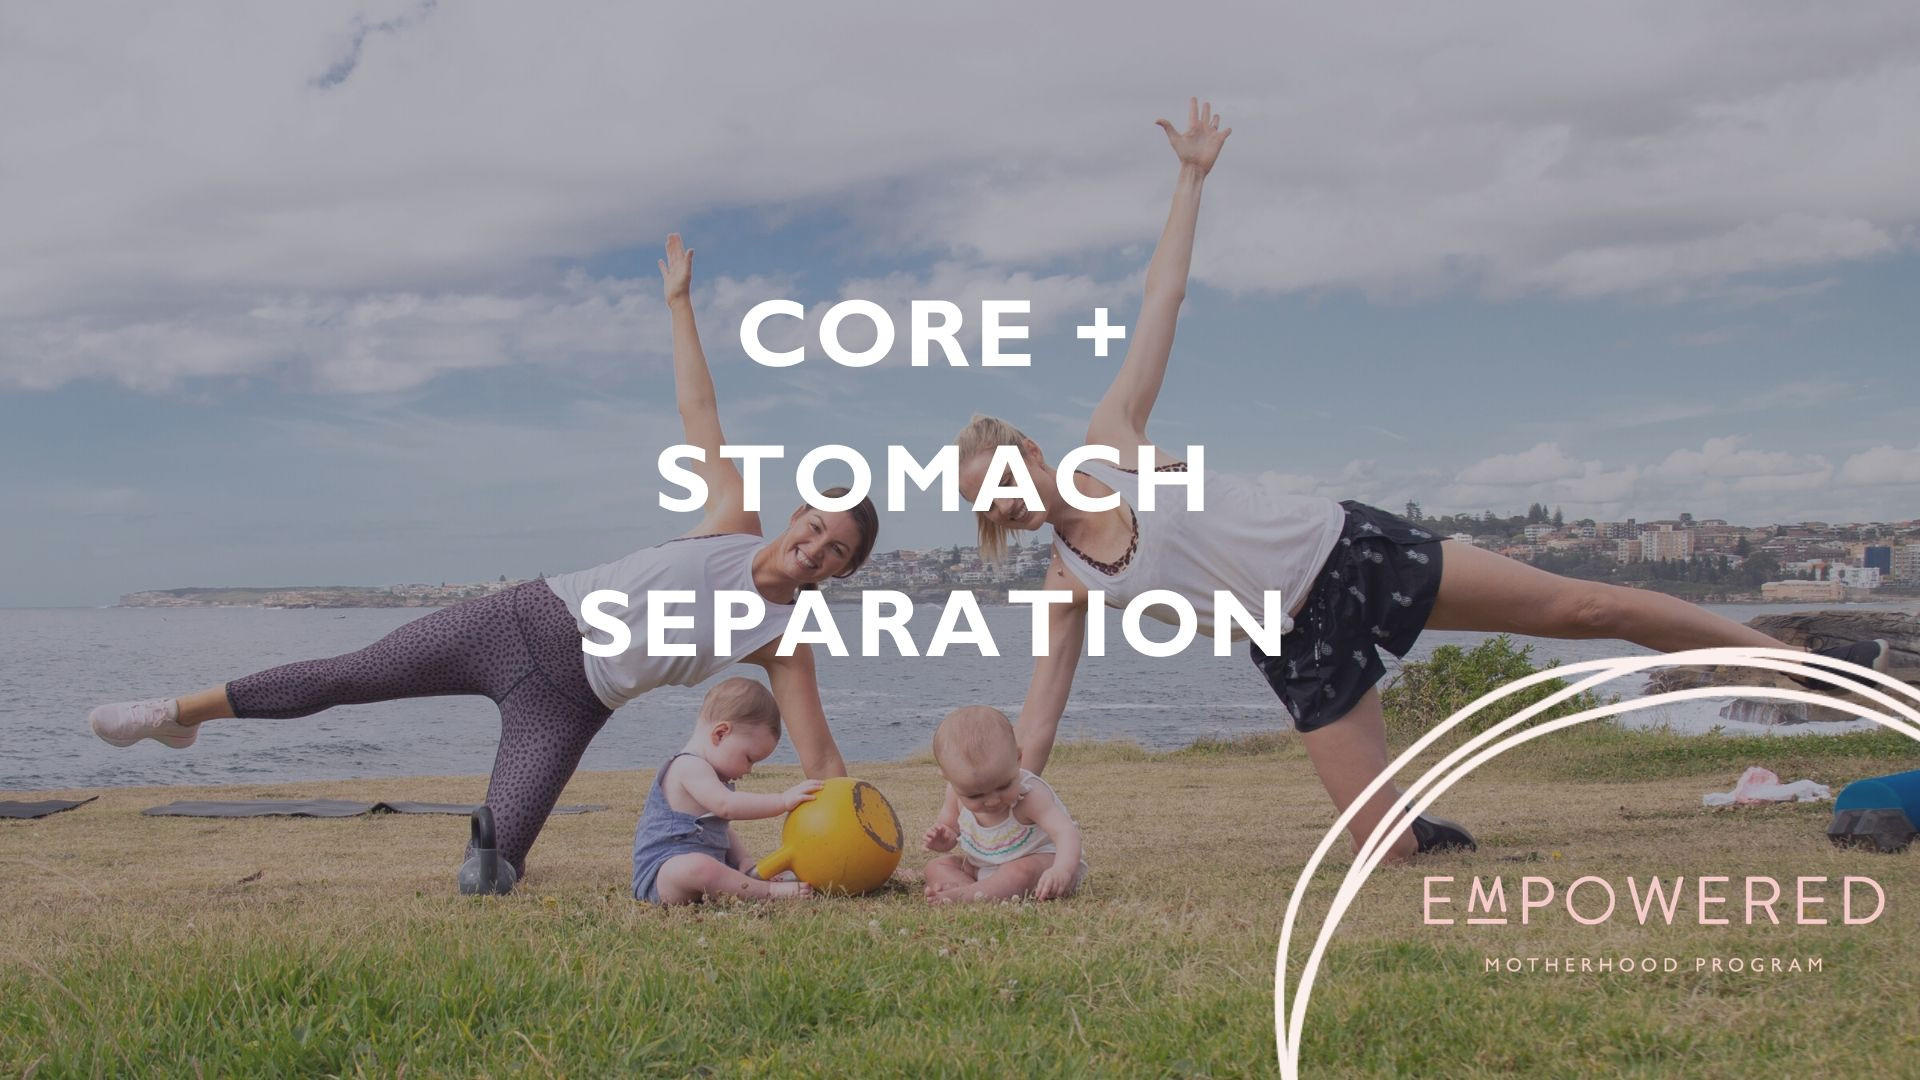 stomach separation, core exercises pregnancy, core exercises after birth, rectus diastasis